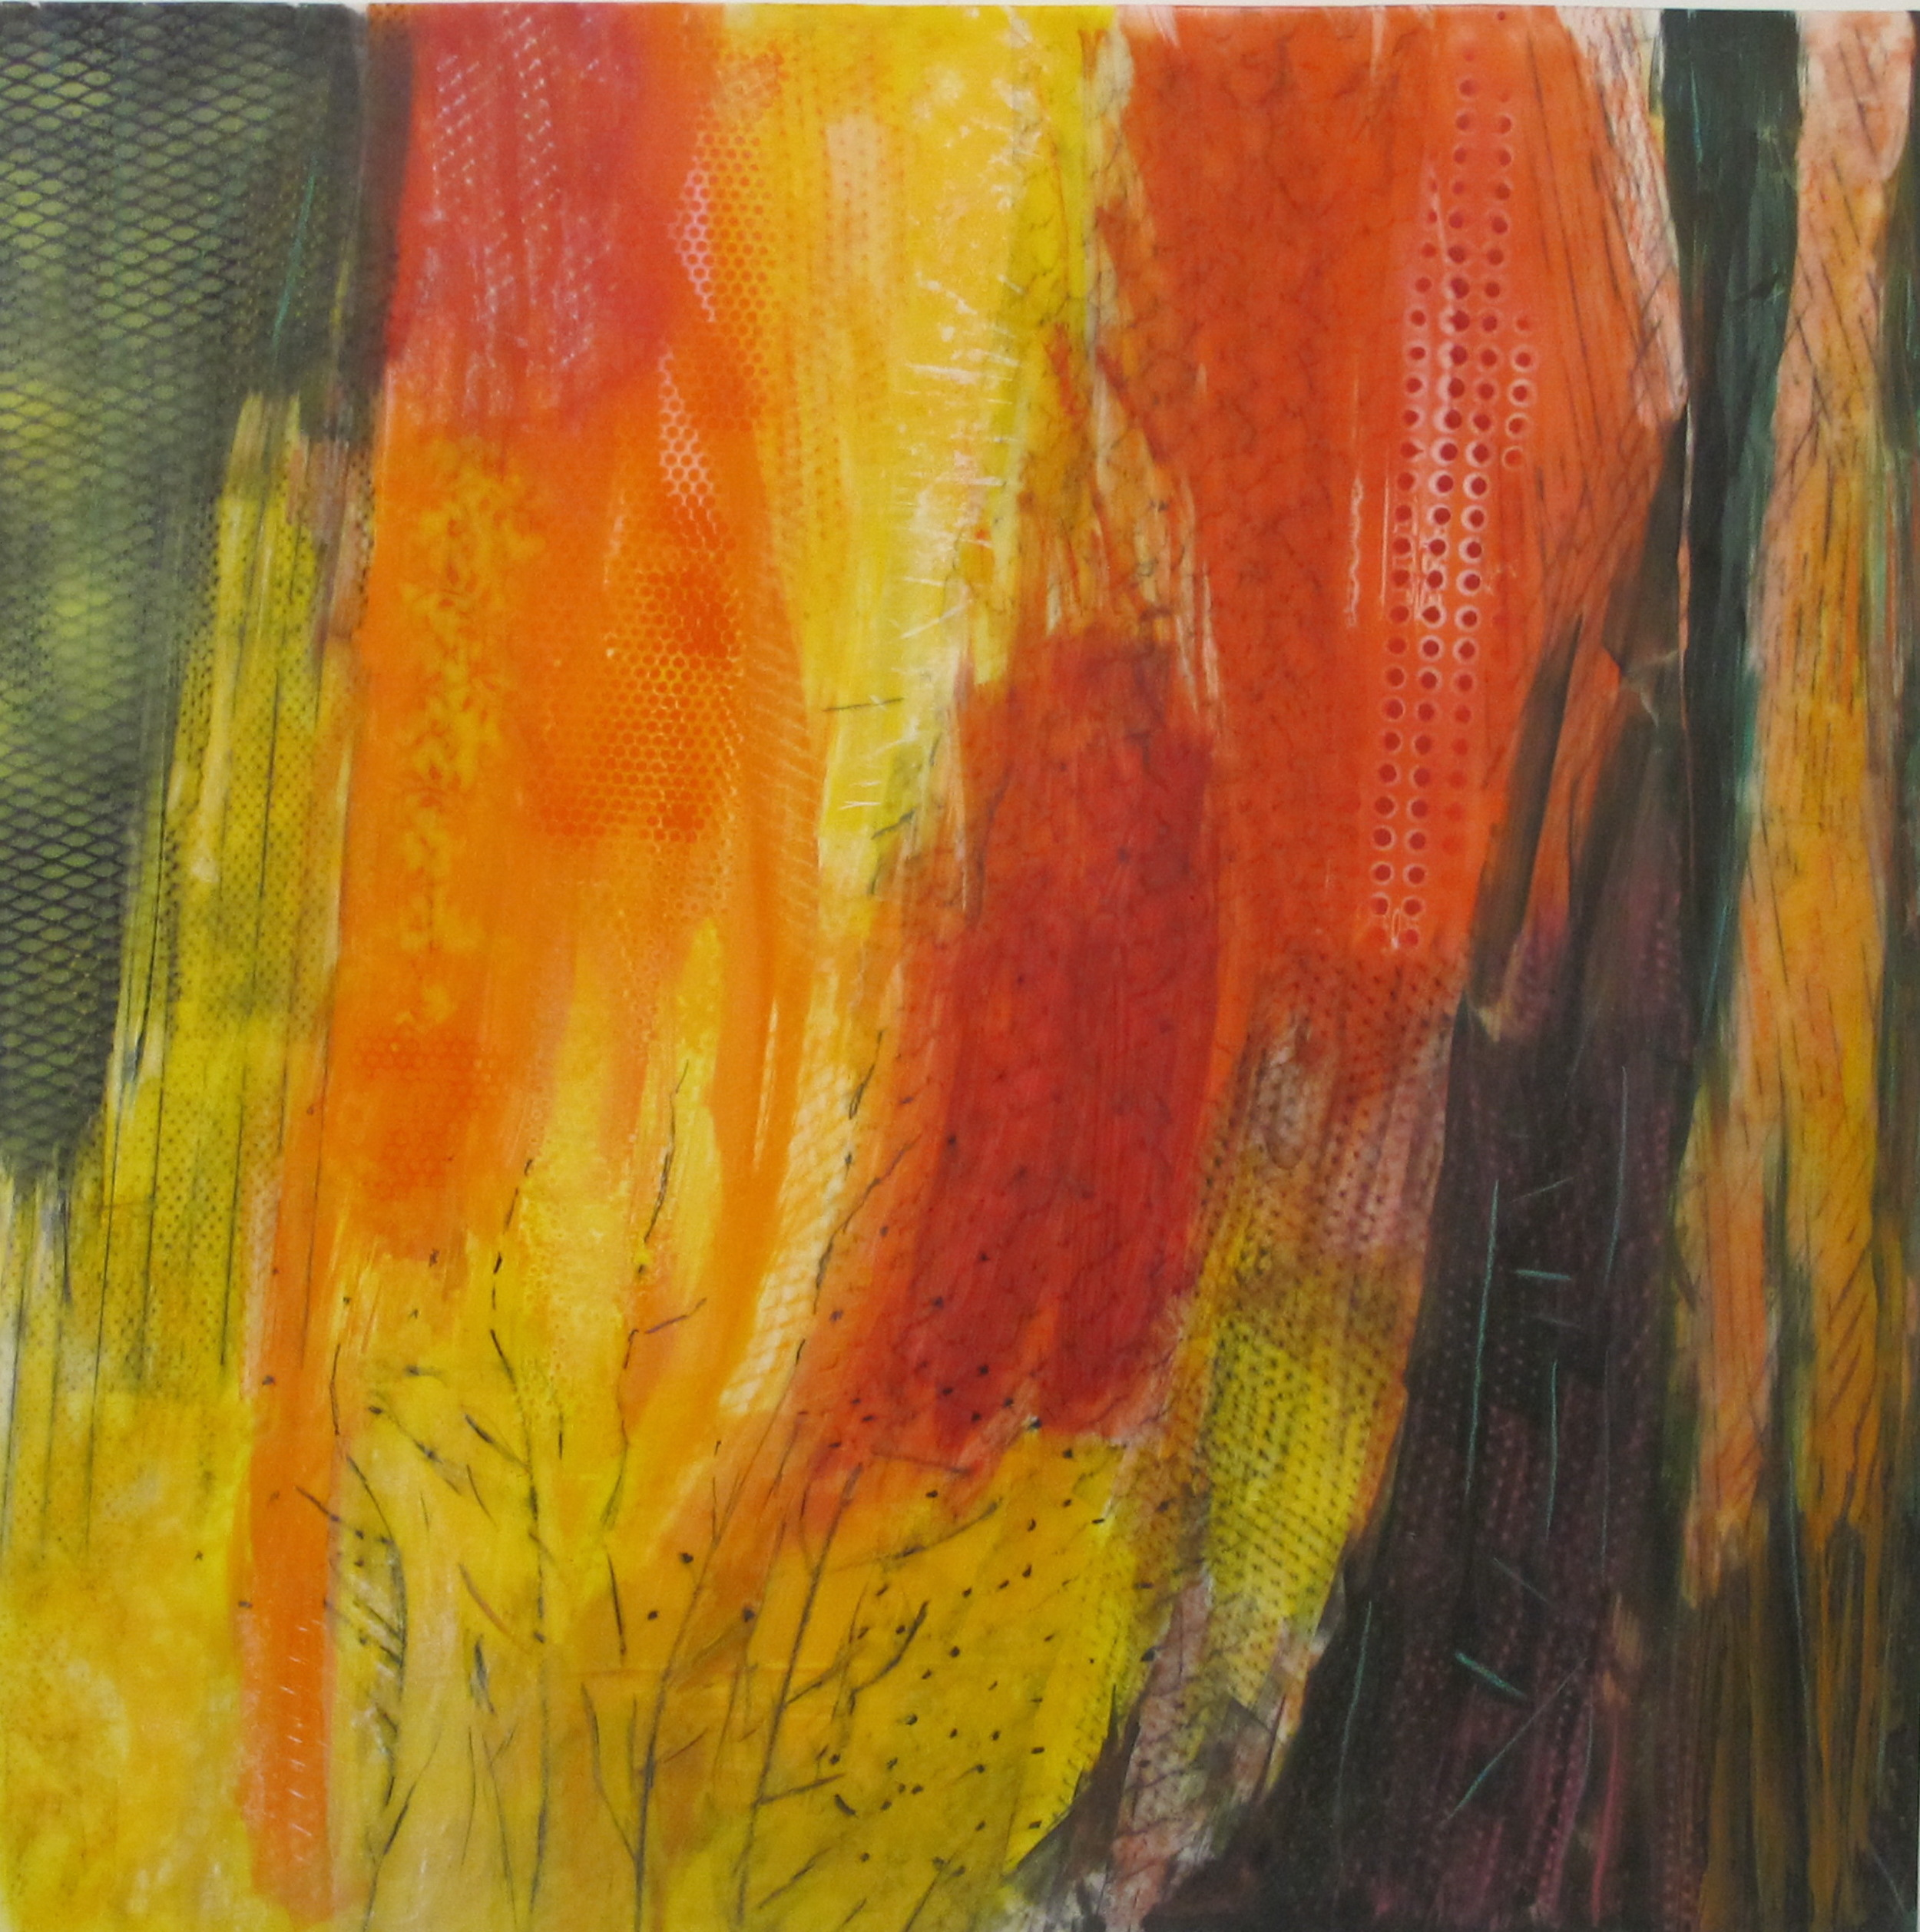 29. Earth Scpae  Forest Fire  oil graphite mixed media on lexan 48 x 48 inches.jpg